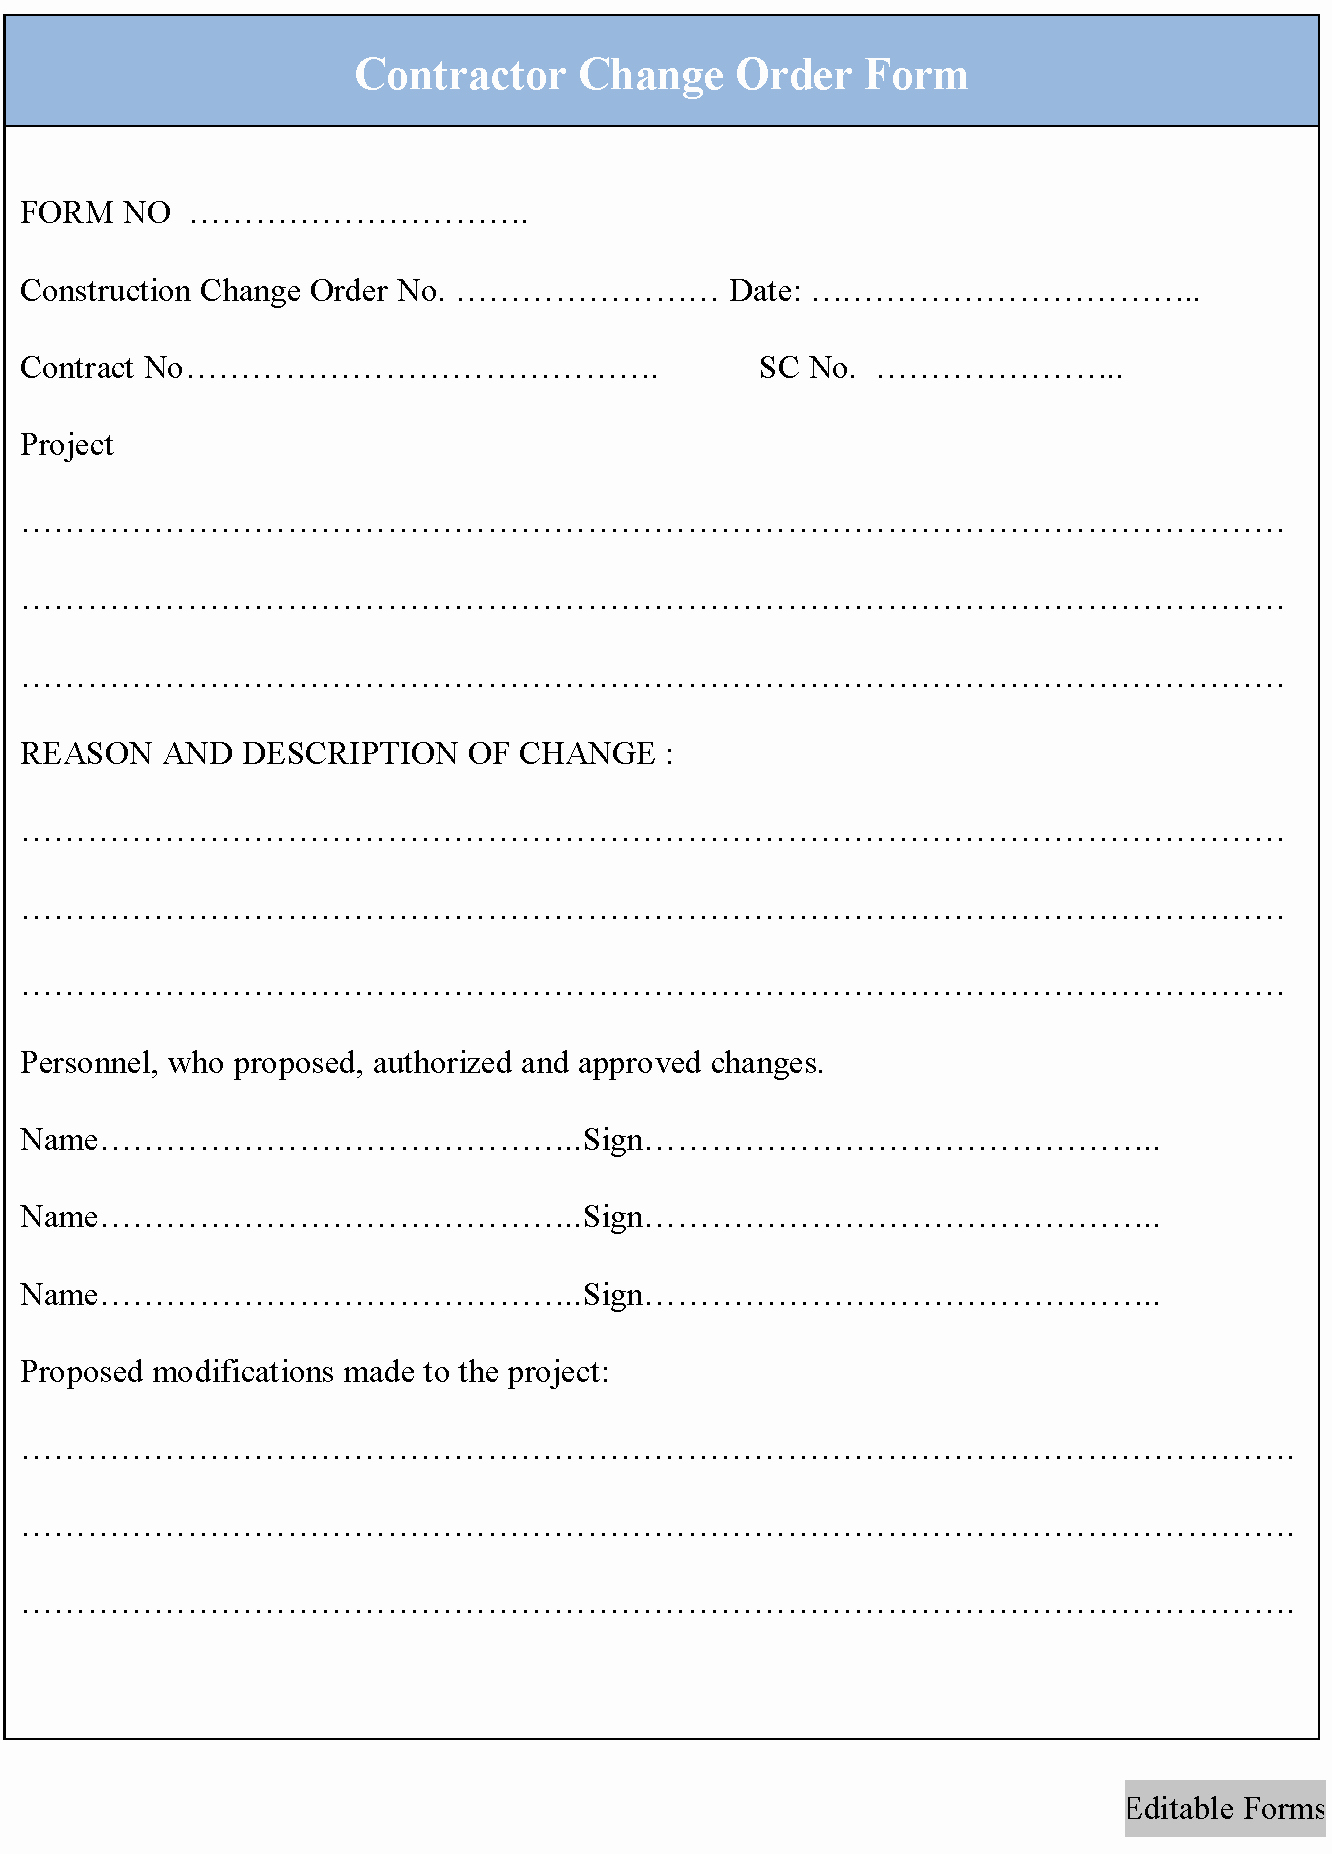 Construction Change order form Template